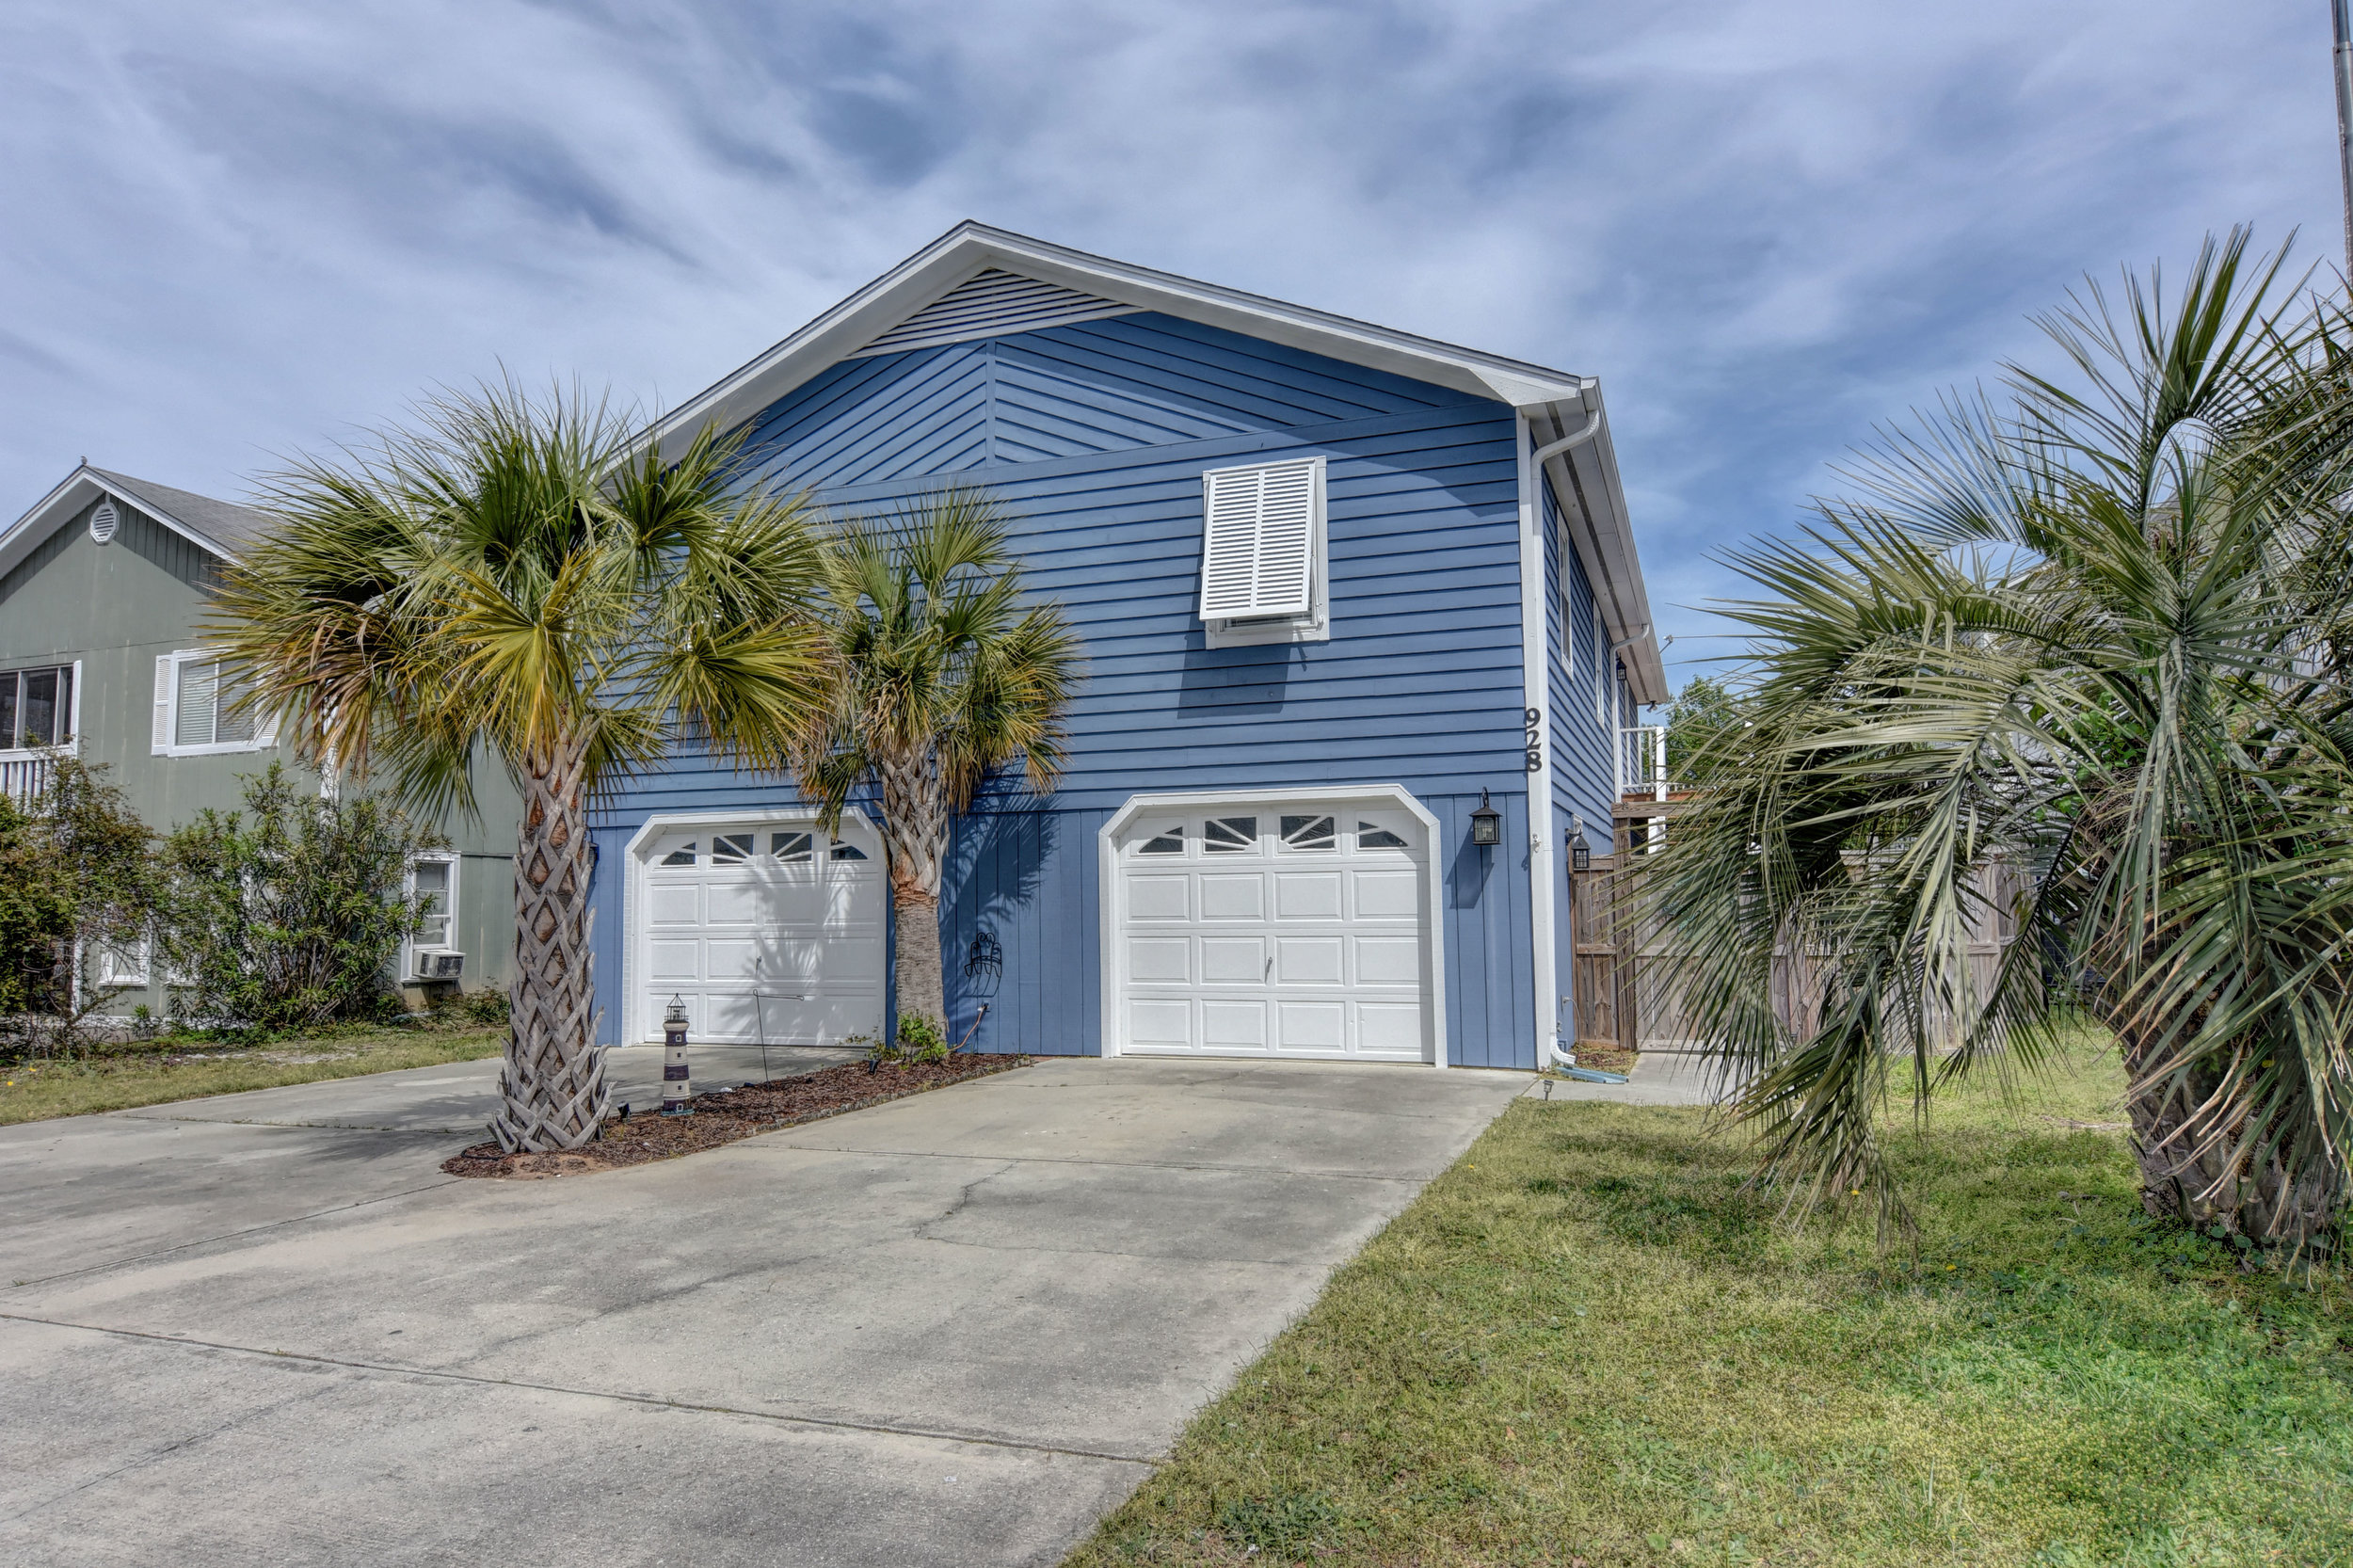 928 Searidge Ln Carolina Beach-print-003-27-DSC 1080 1 2-4200x2800-300dpi.jpg